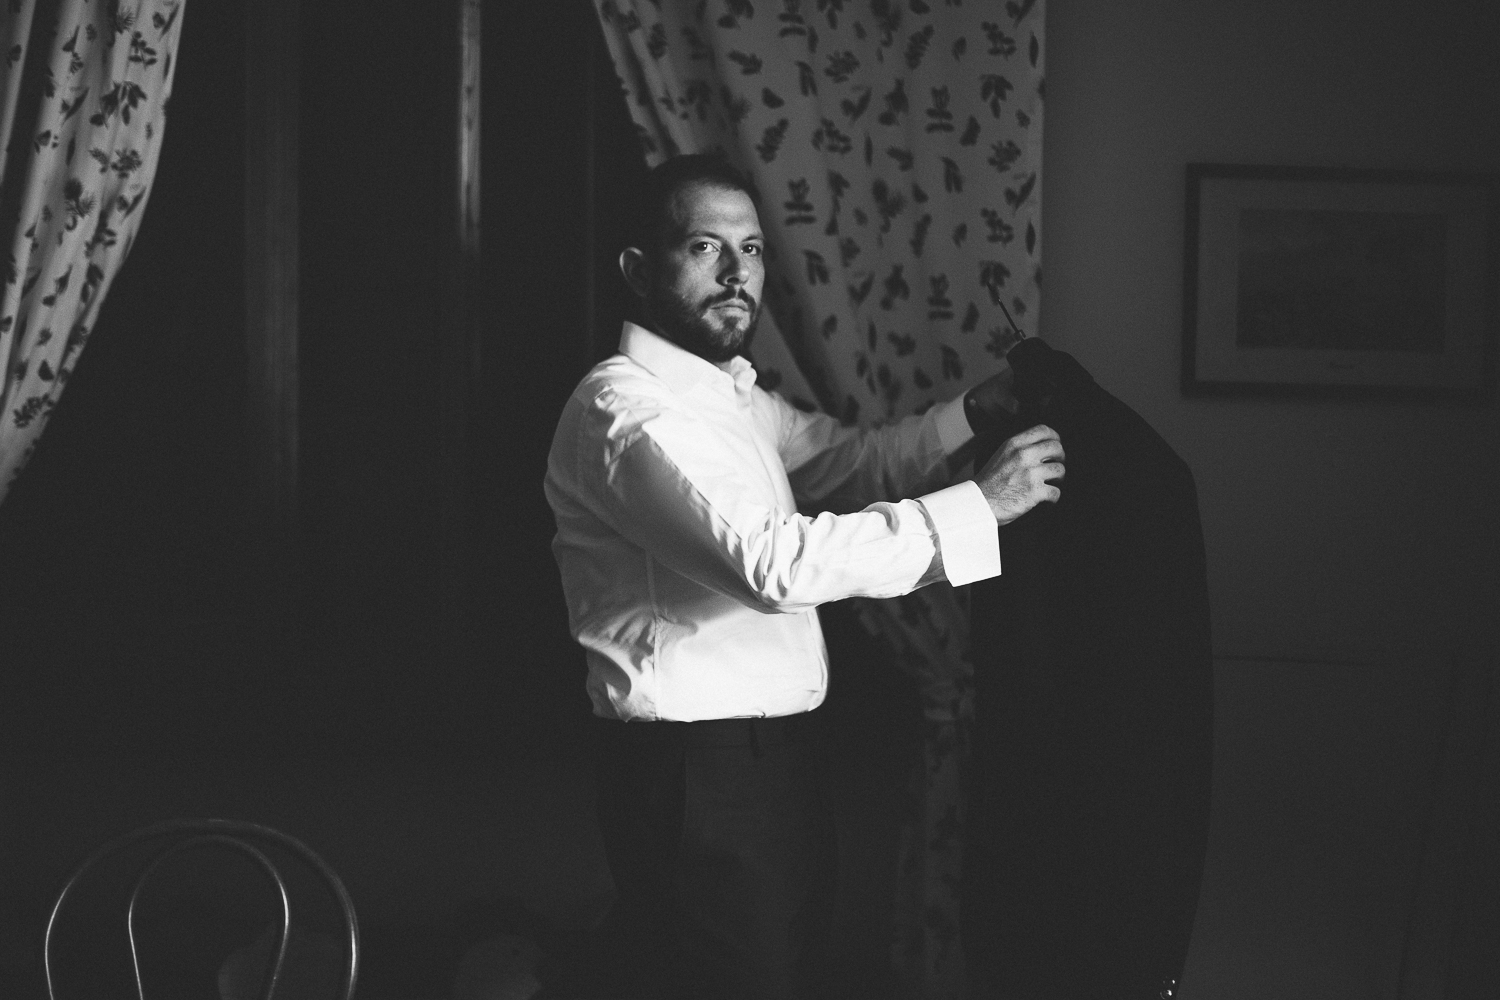 groom-getting-ready-wedding-stop-motion-italy.jpg